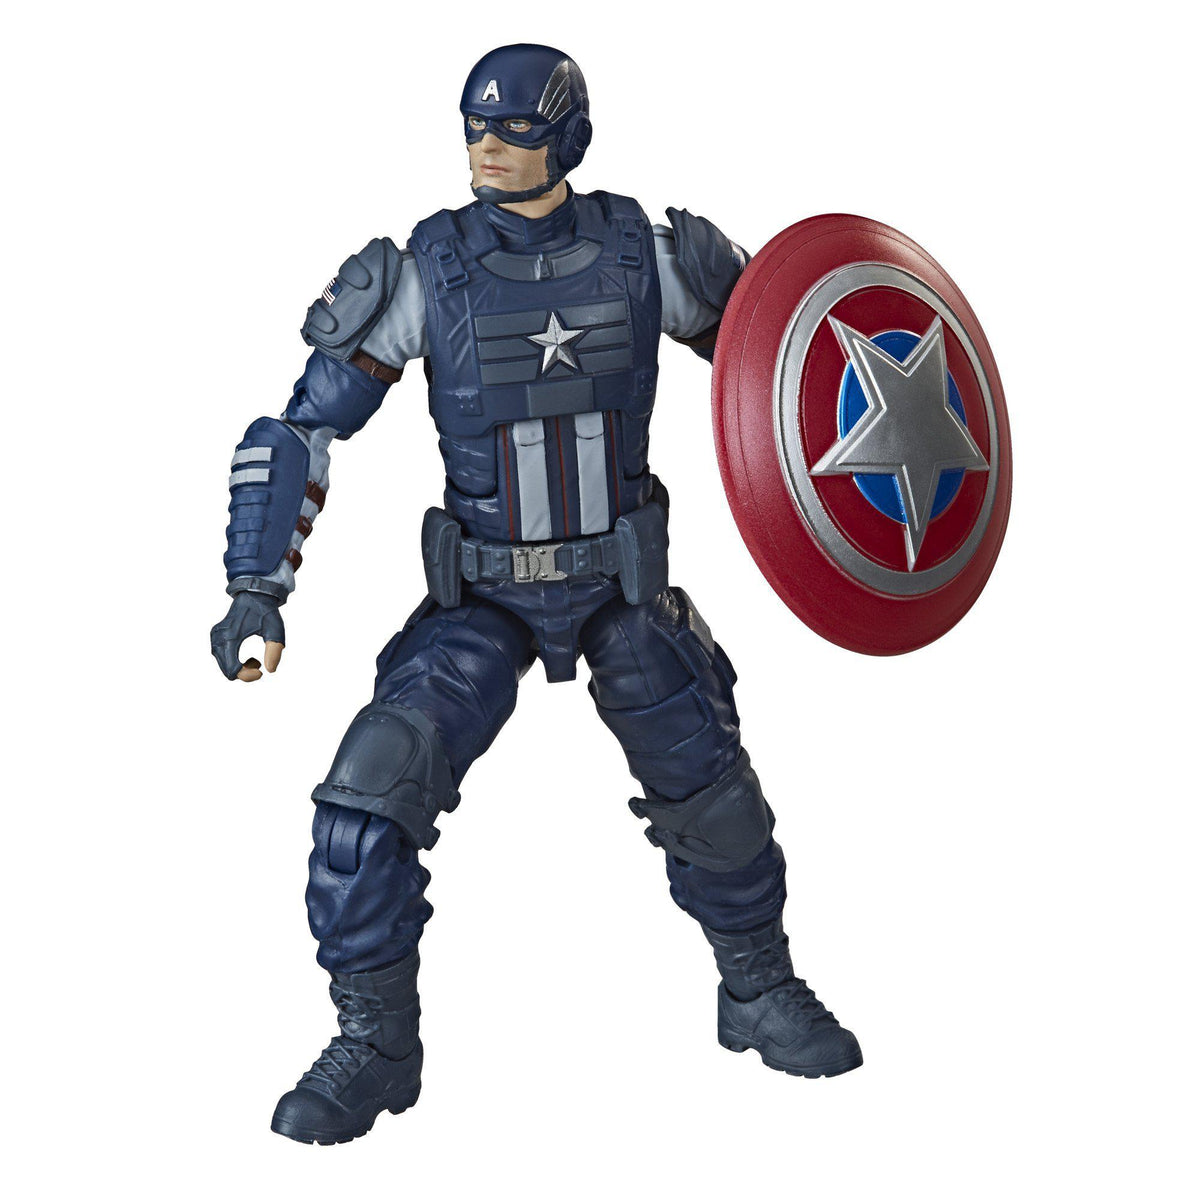 AVENGERS LEGENDS GAMERVERSE 6-INCH ACTION FIGURE - CAPTAIN AMERICA